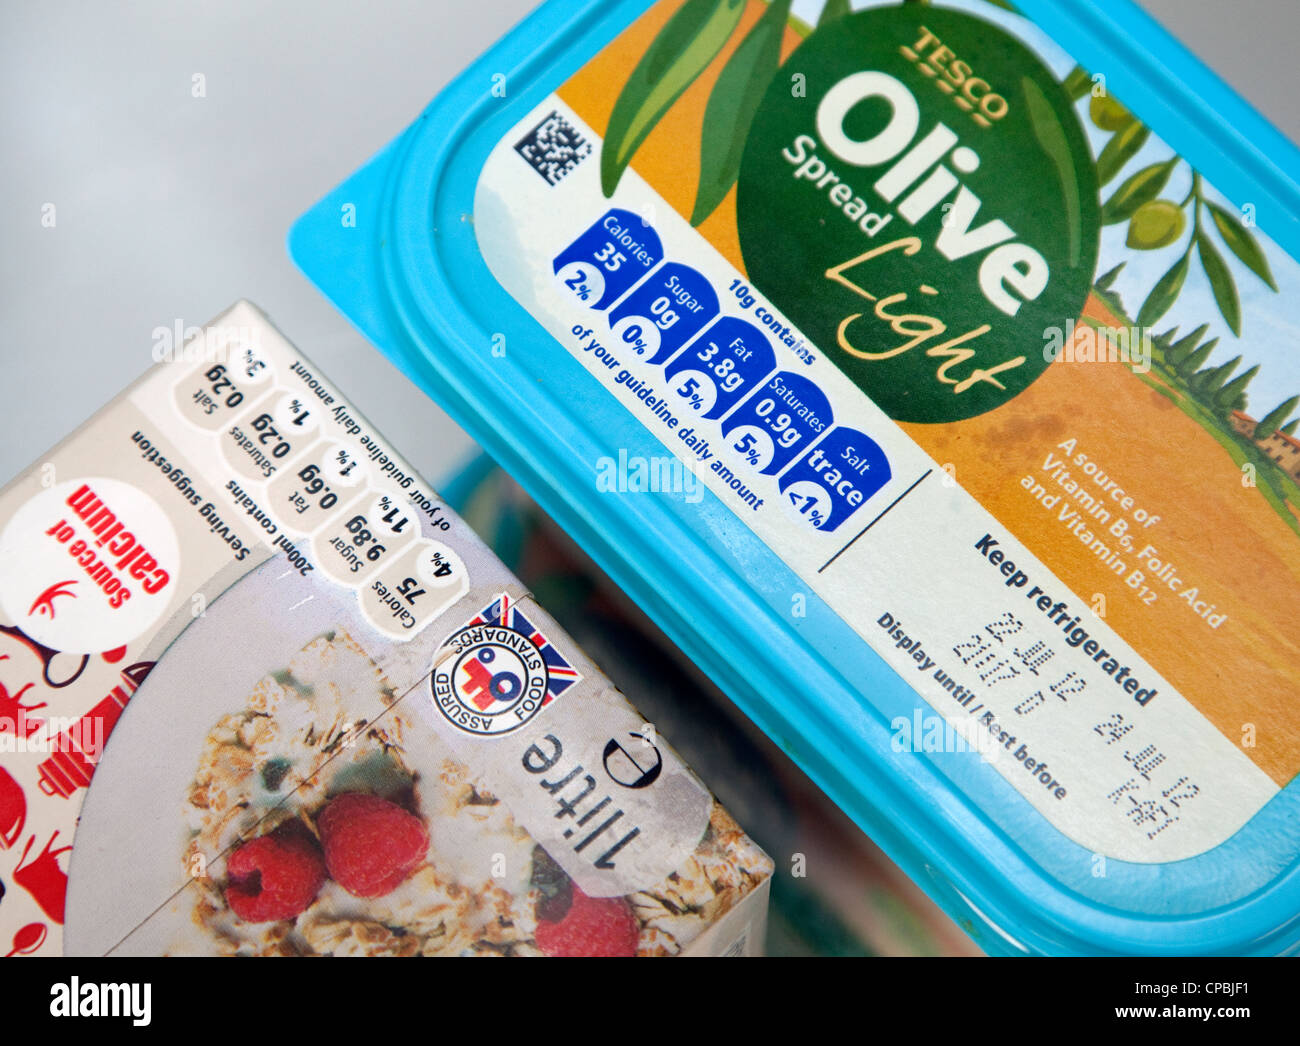 health-information-food-labelling-on-supermarket-products-CPBJF1